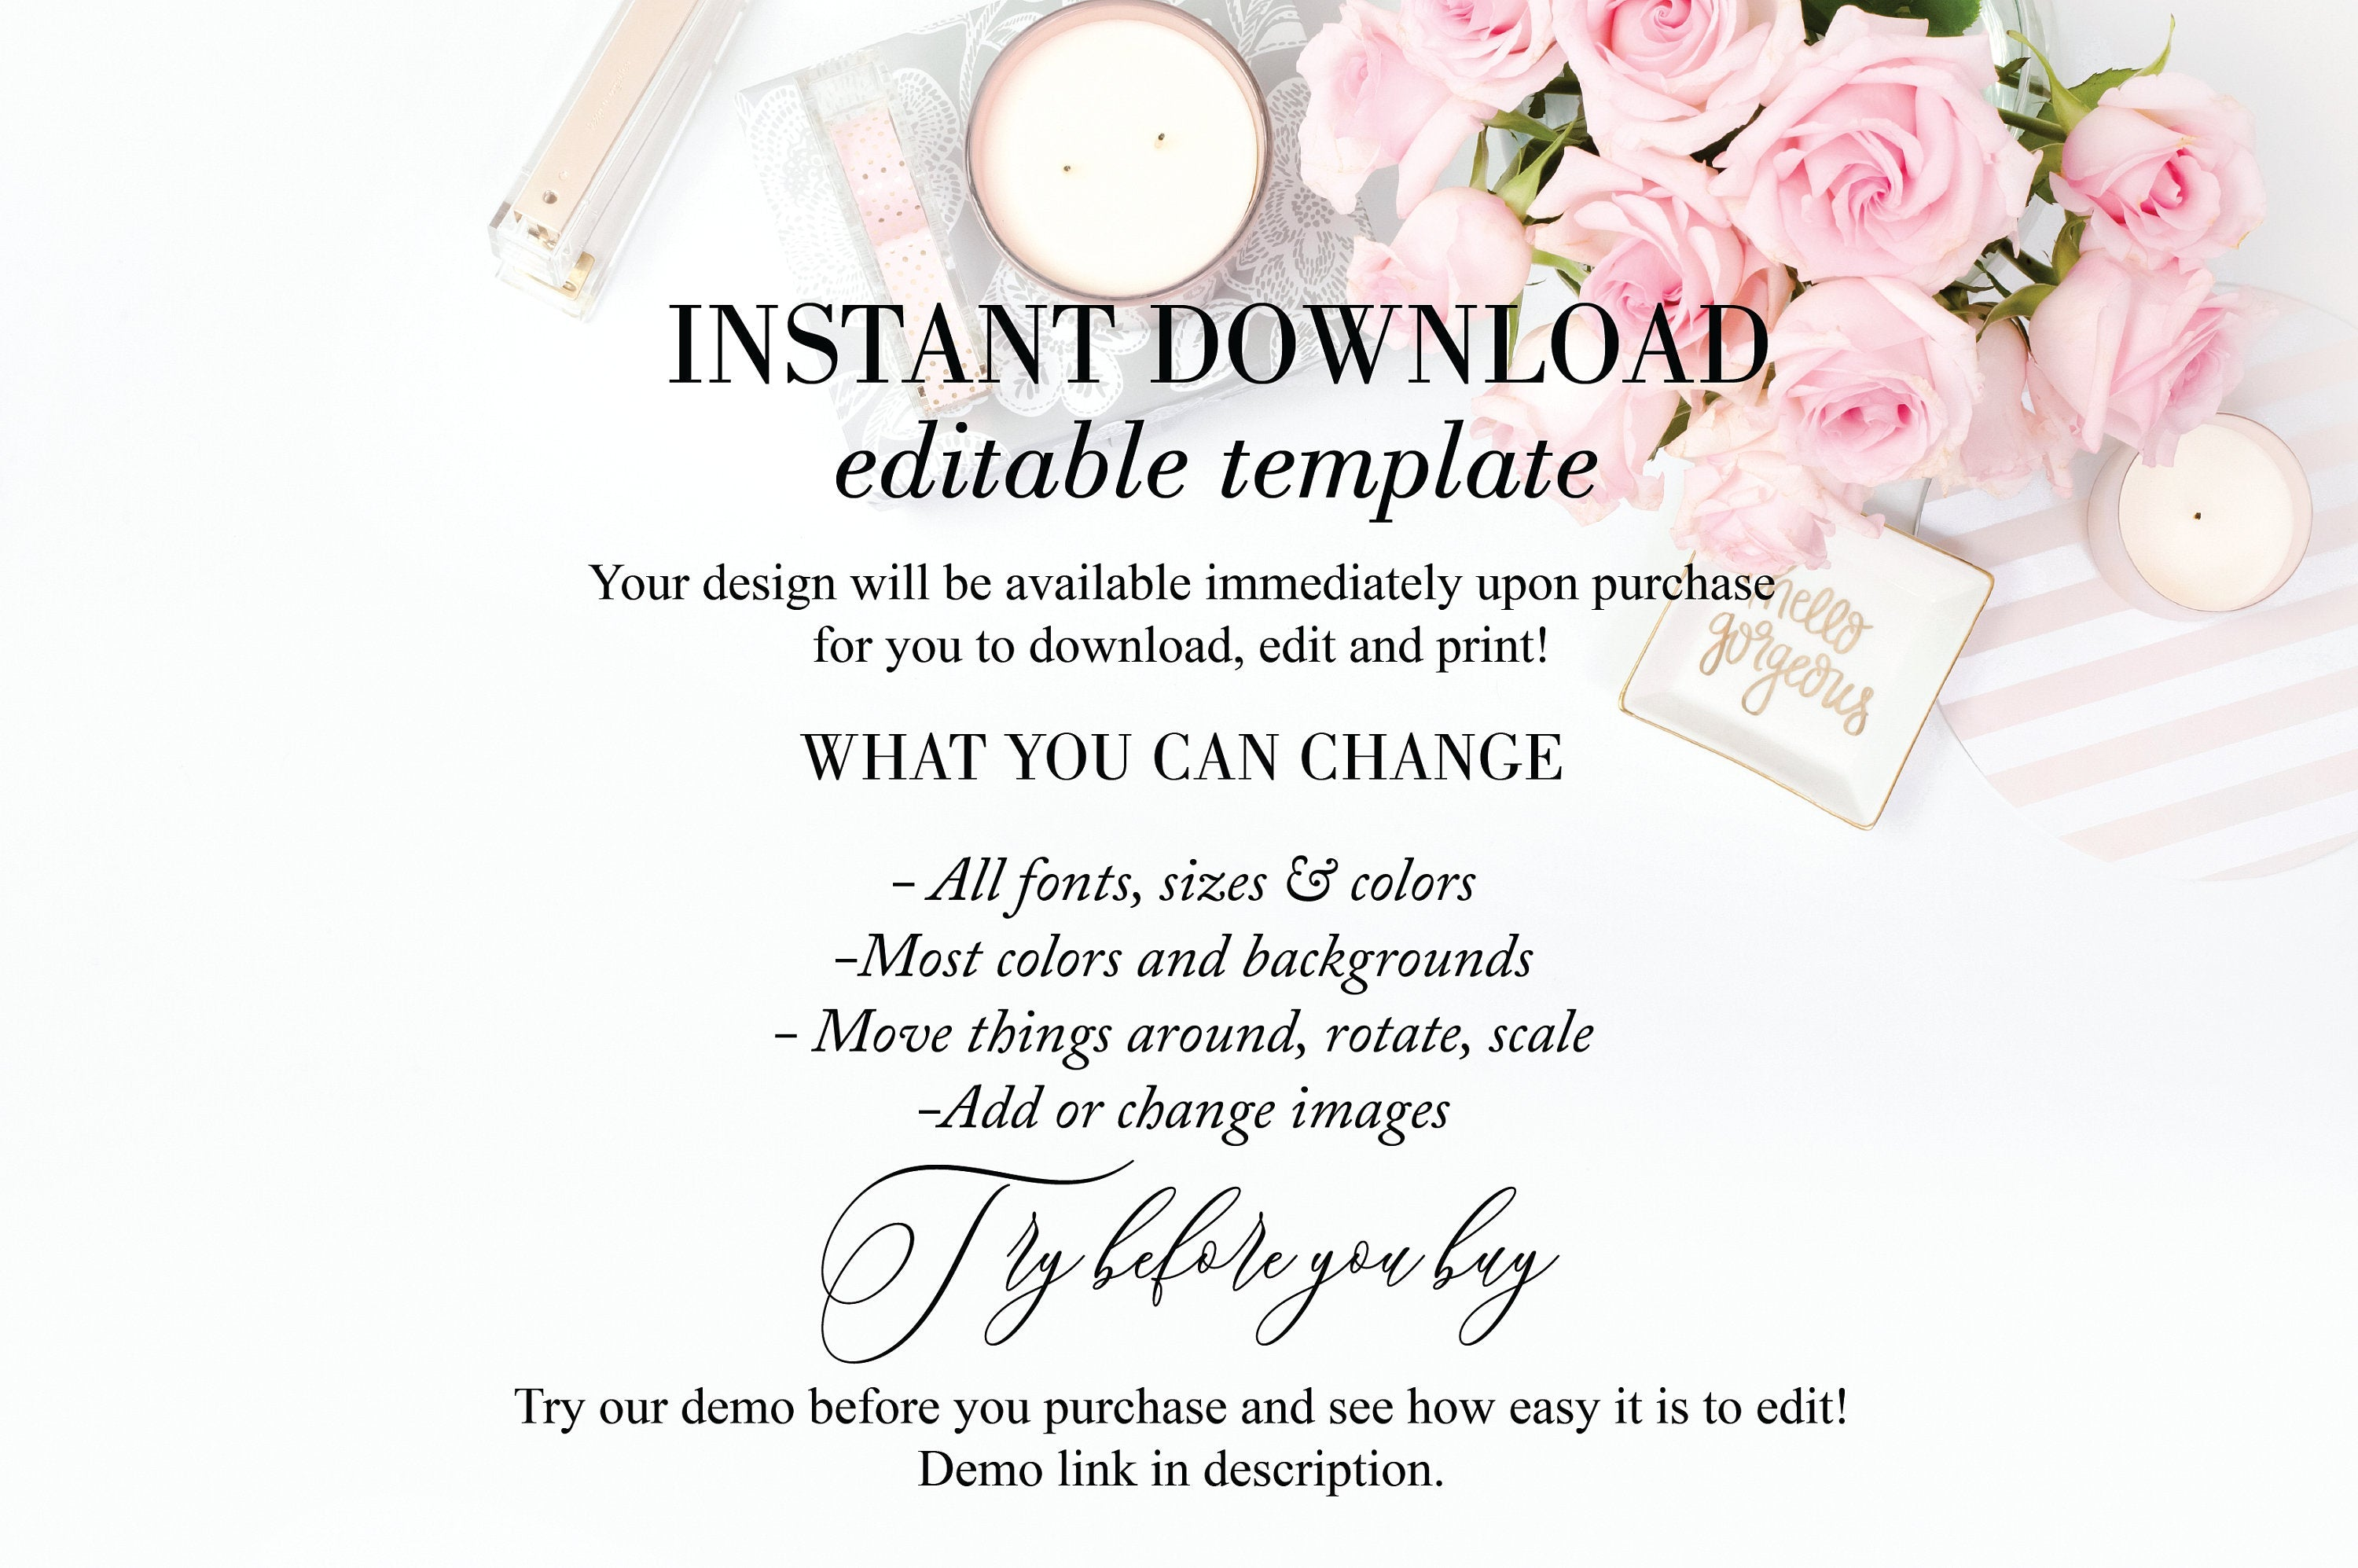 Fall Wedding Program Fan Template Printable Ceremony Programs Card Floral Watercolor Editable Template Instant download - Karen